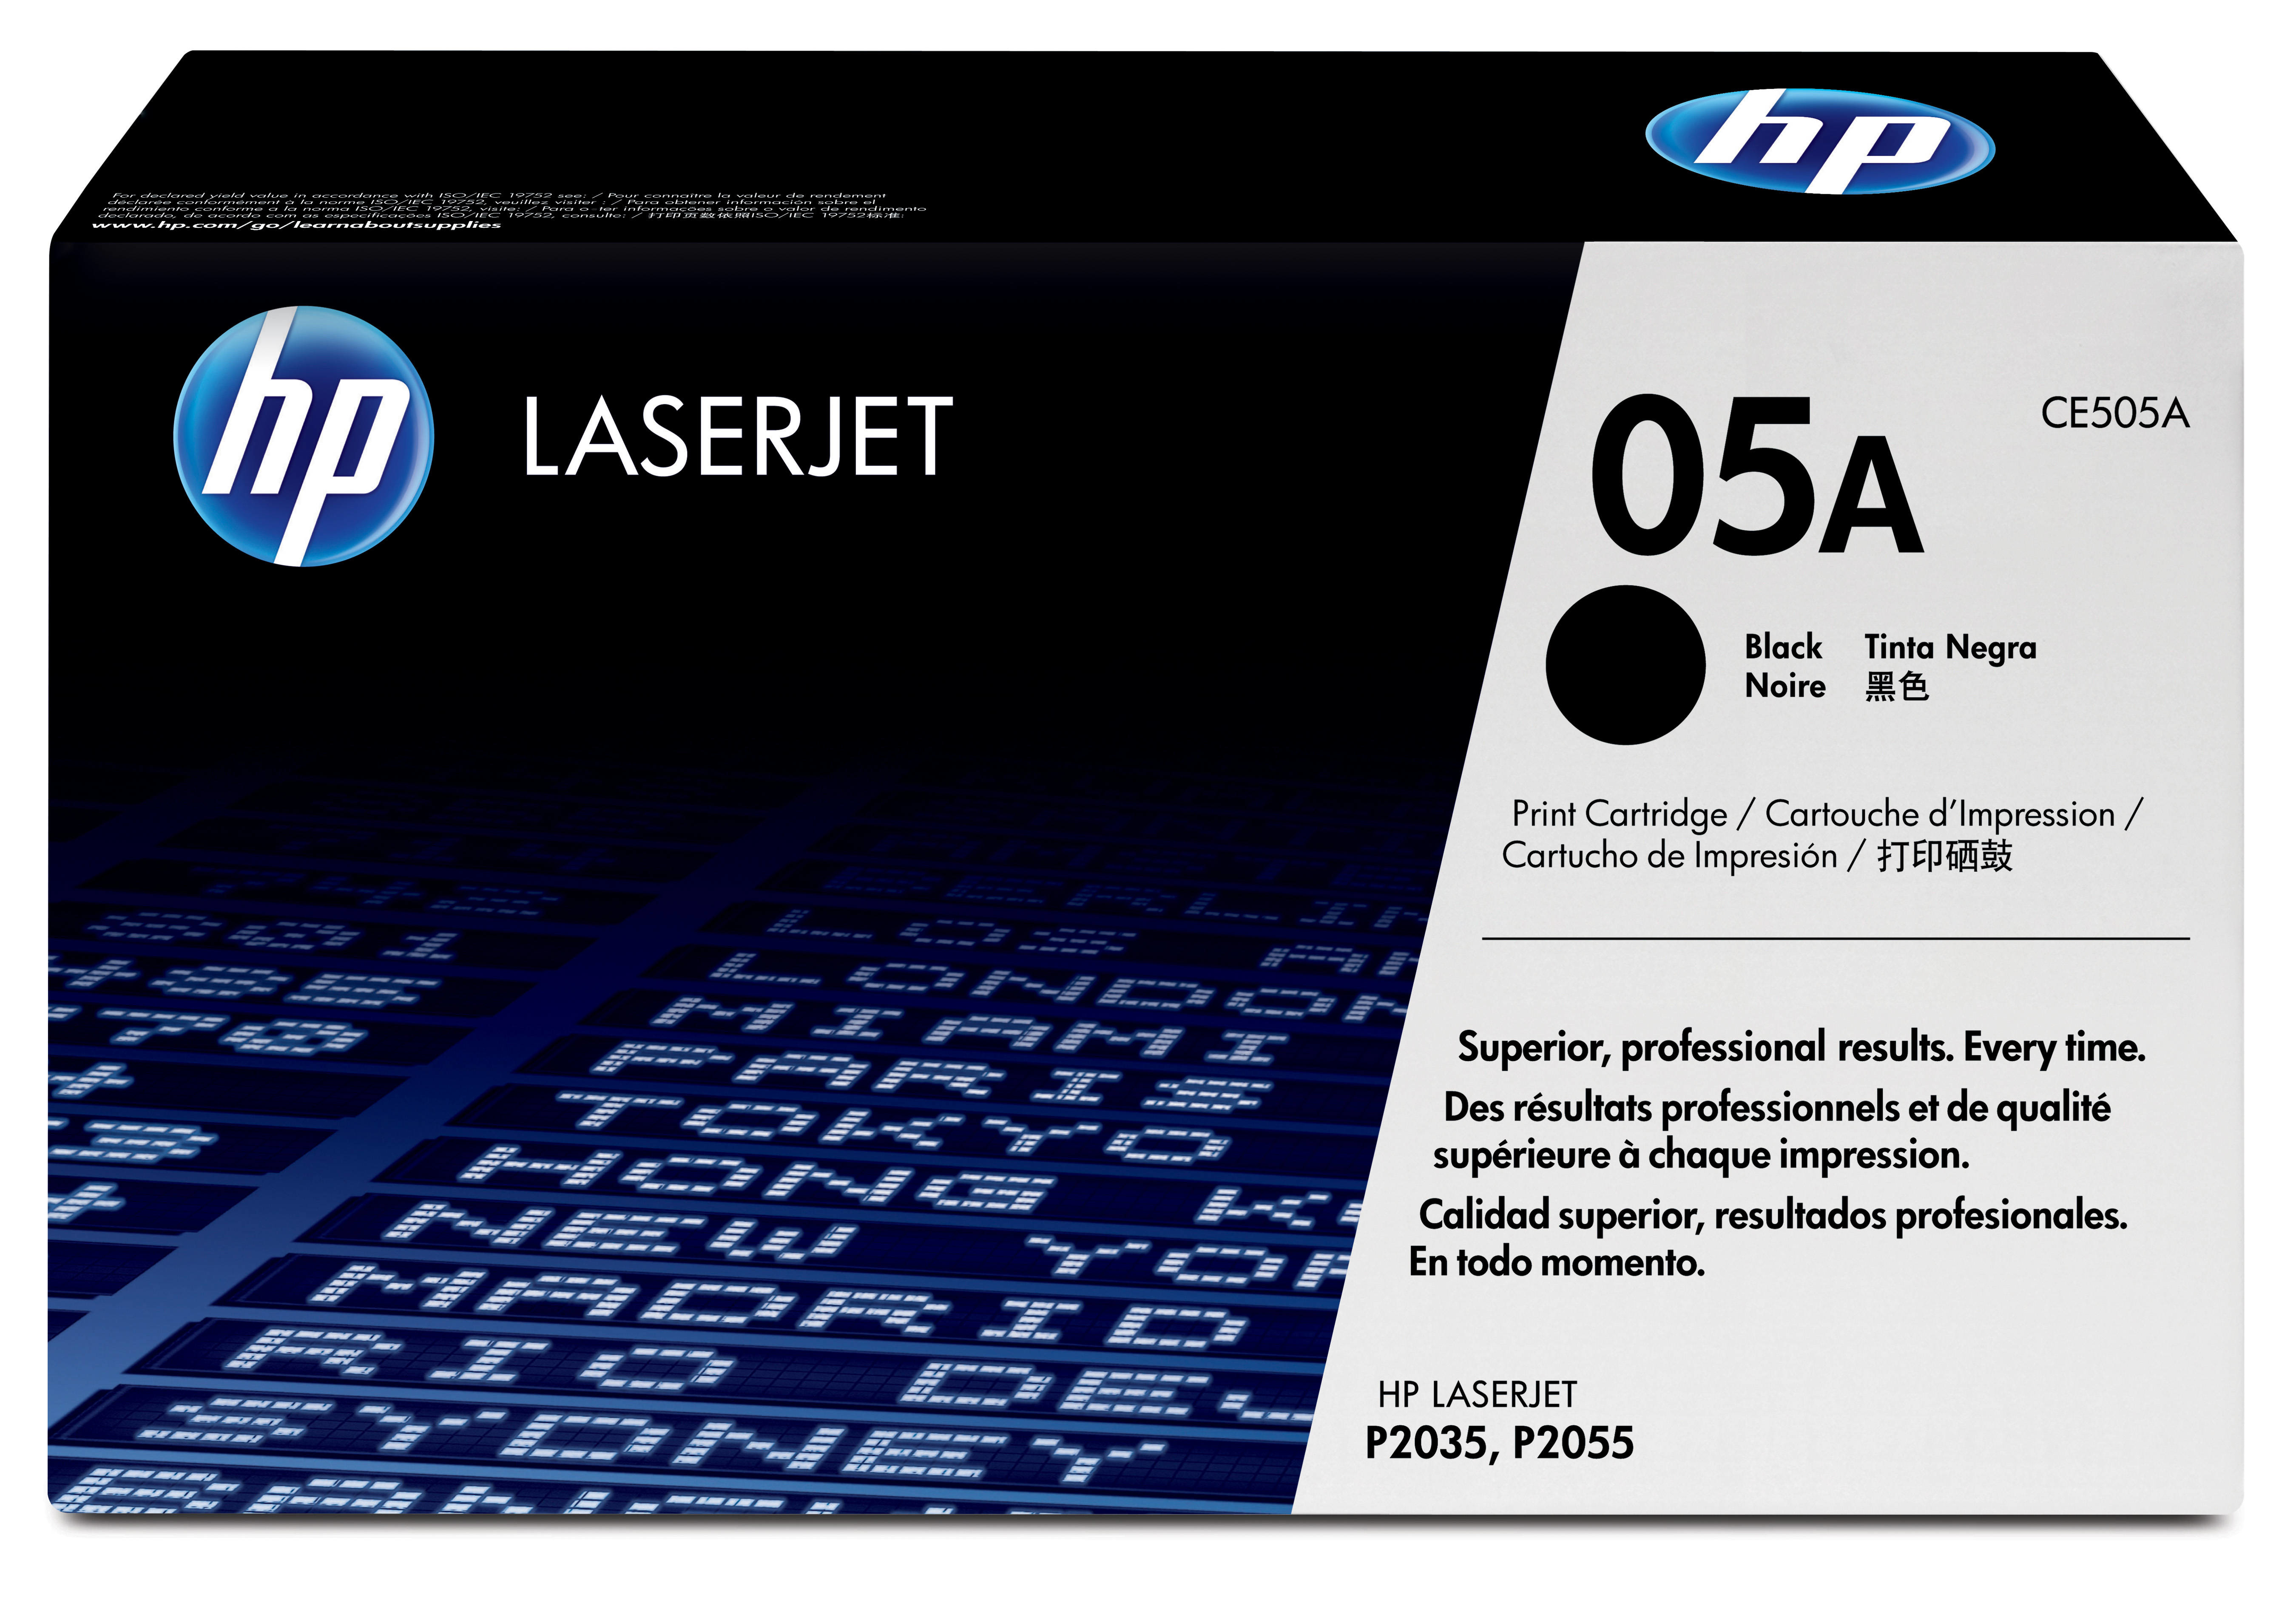 HP 05A - CE505A - 1 X Black - Toner Cartridge - For LaserJet P2033, P2035, P2036, P2037, P2054, P2055, P2056, P2057 CE505A - C2000